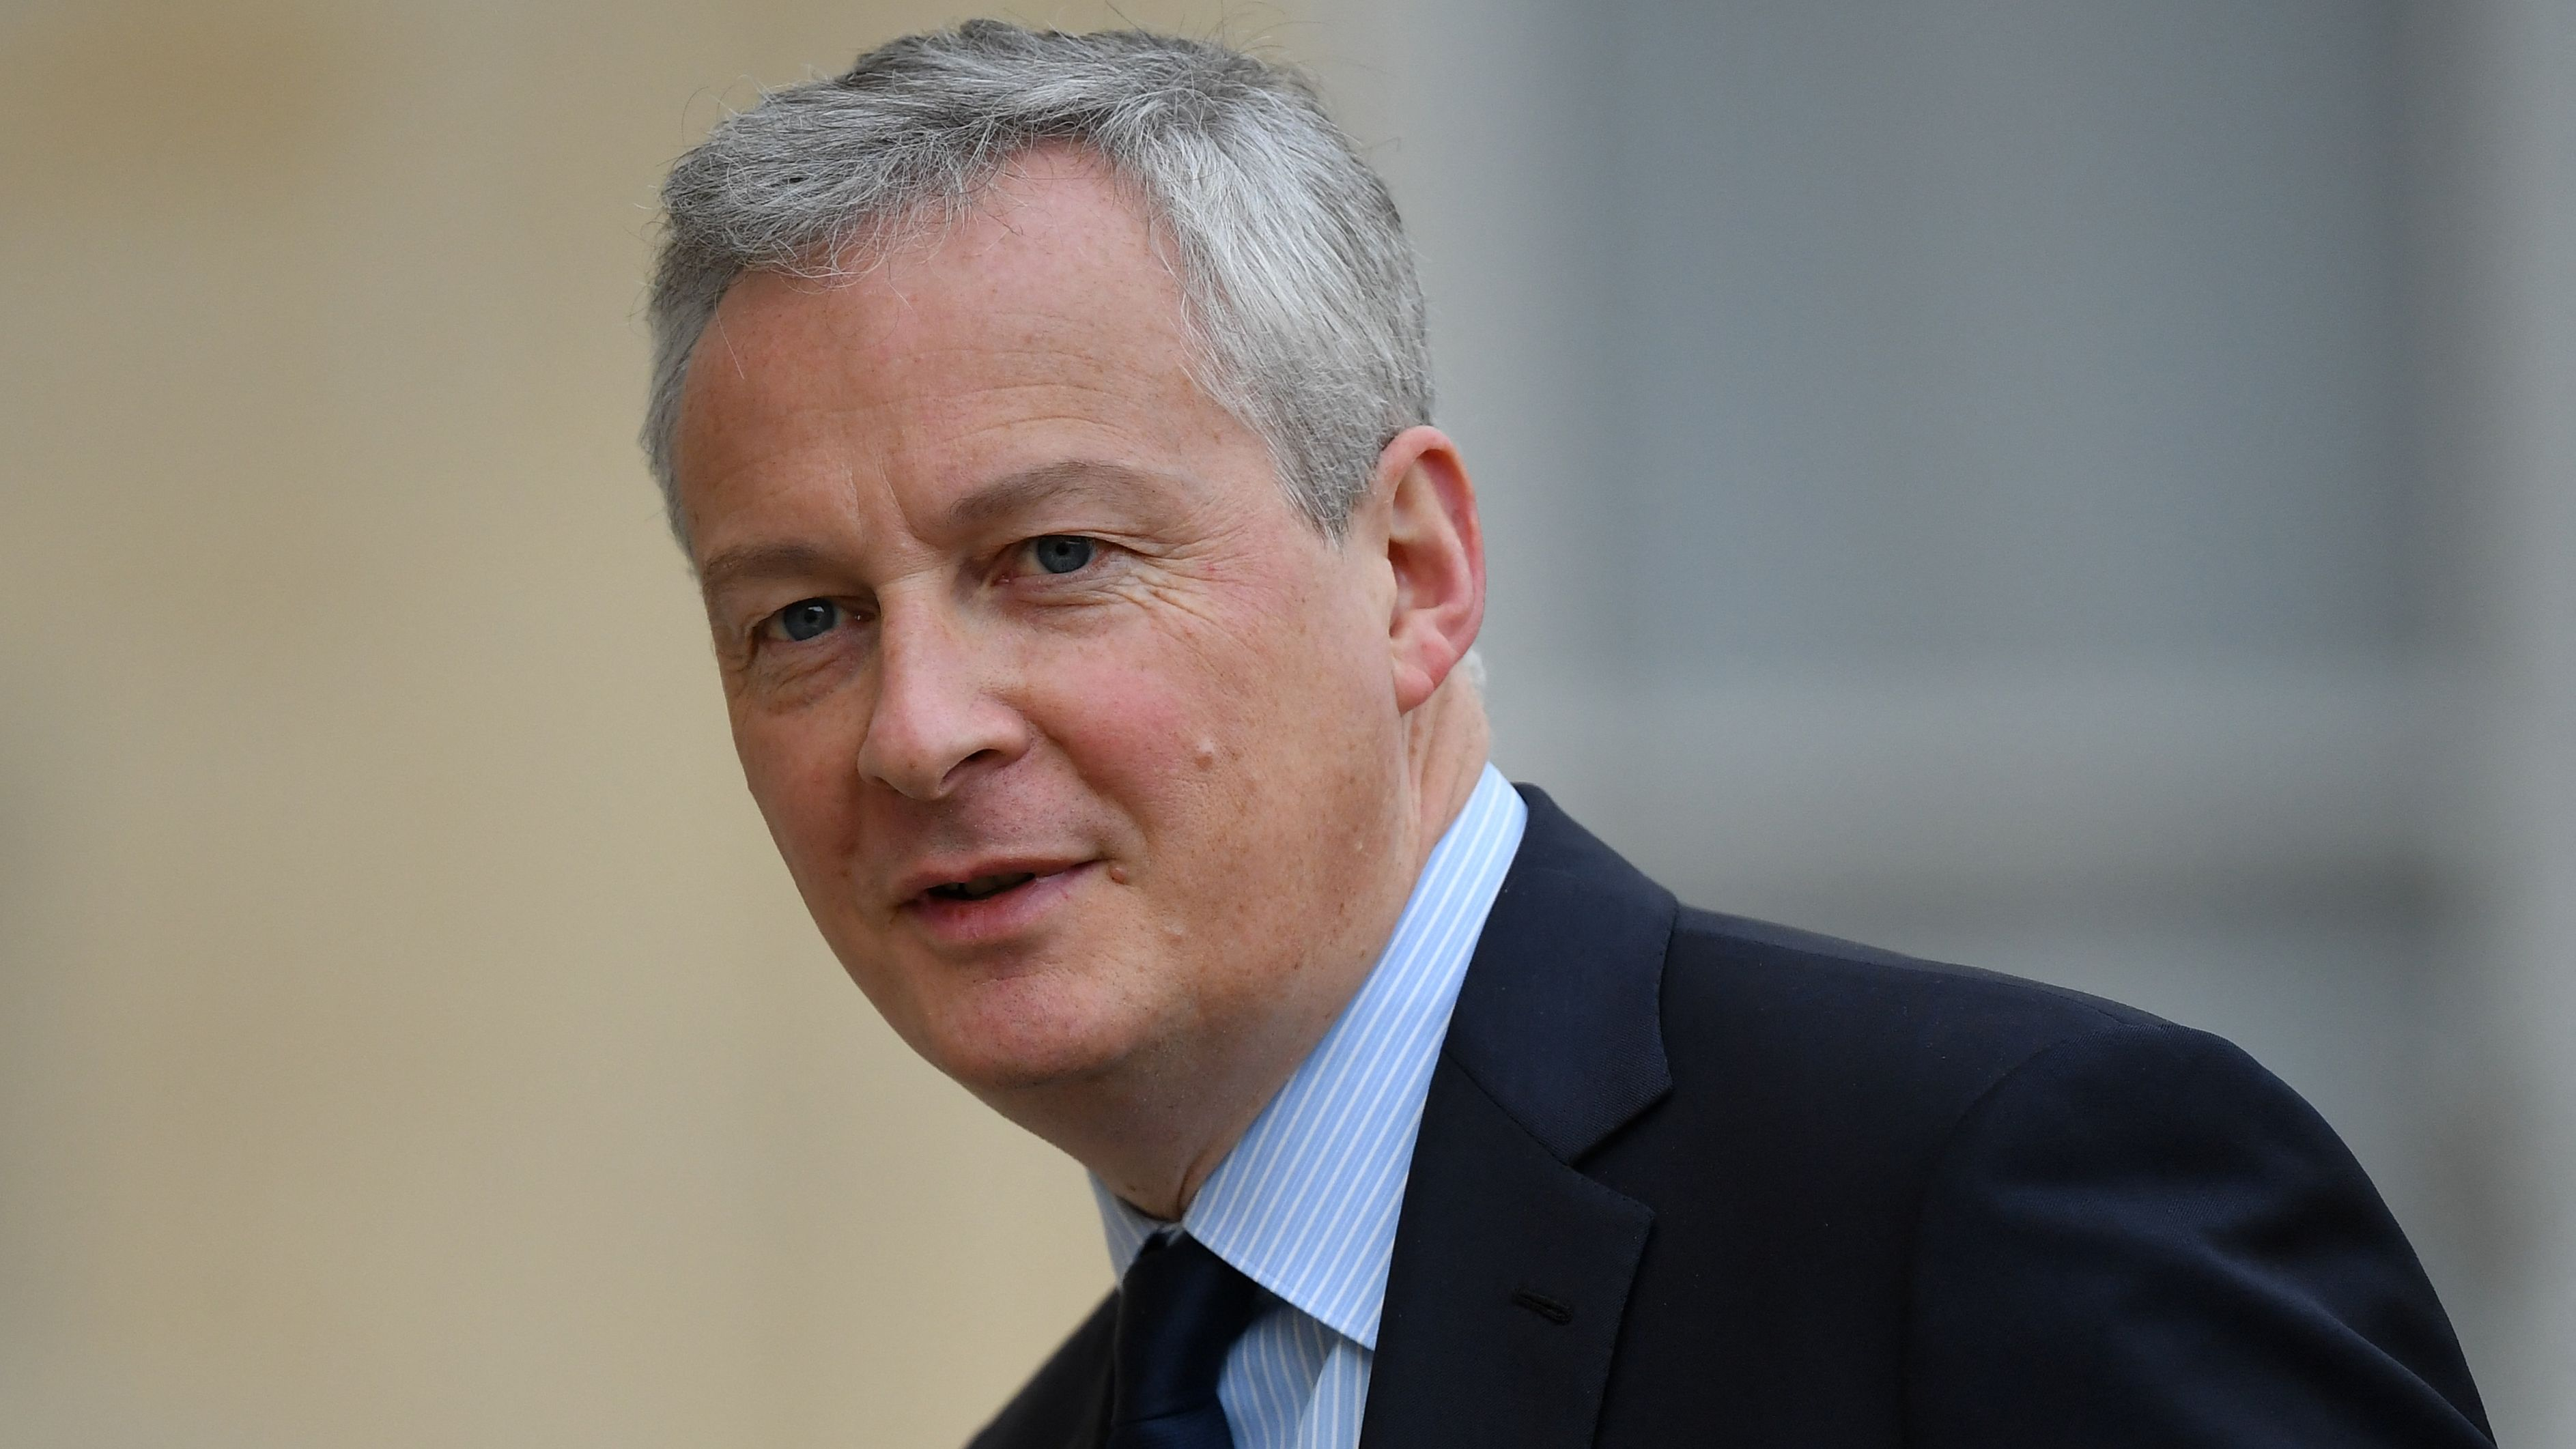 Frankreichs Finanzminister Bruno Le Maire.